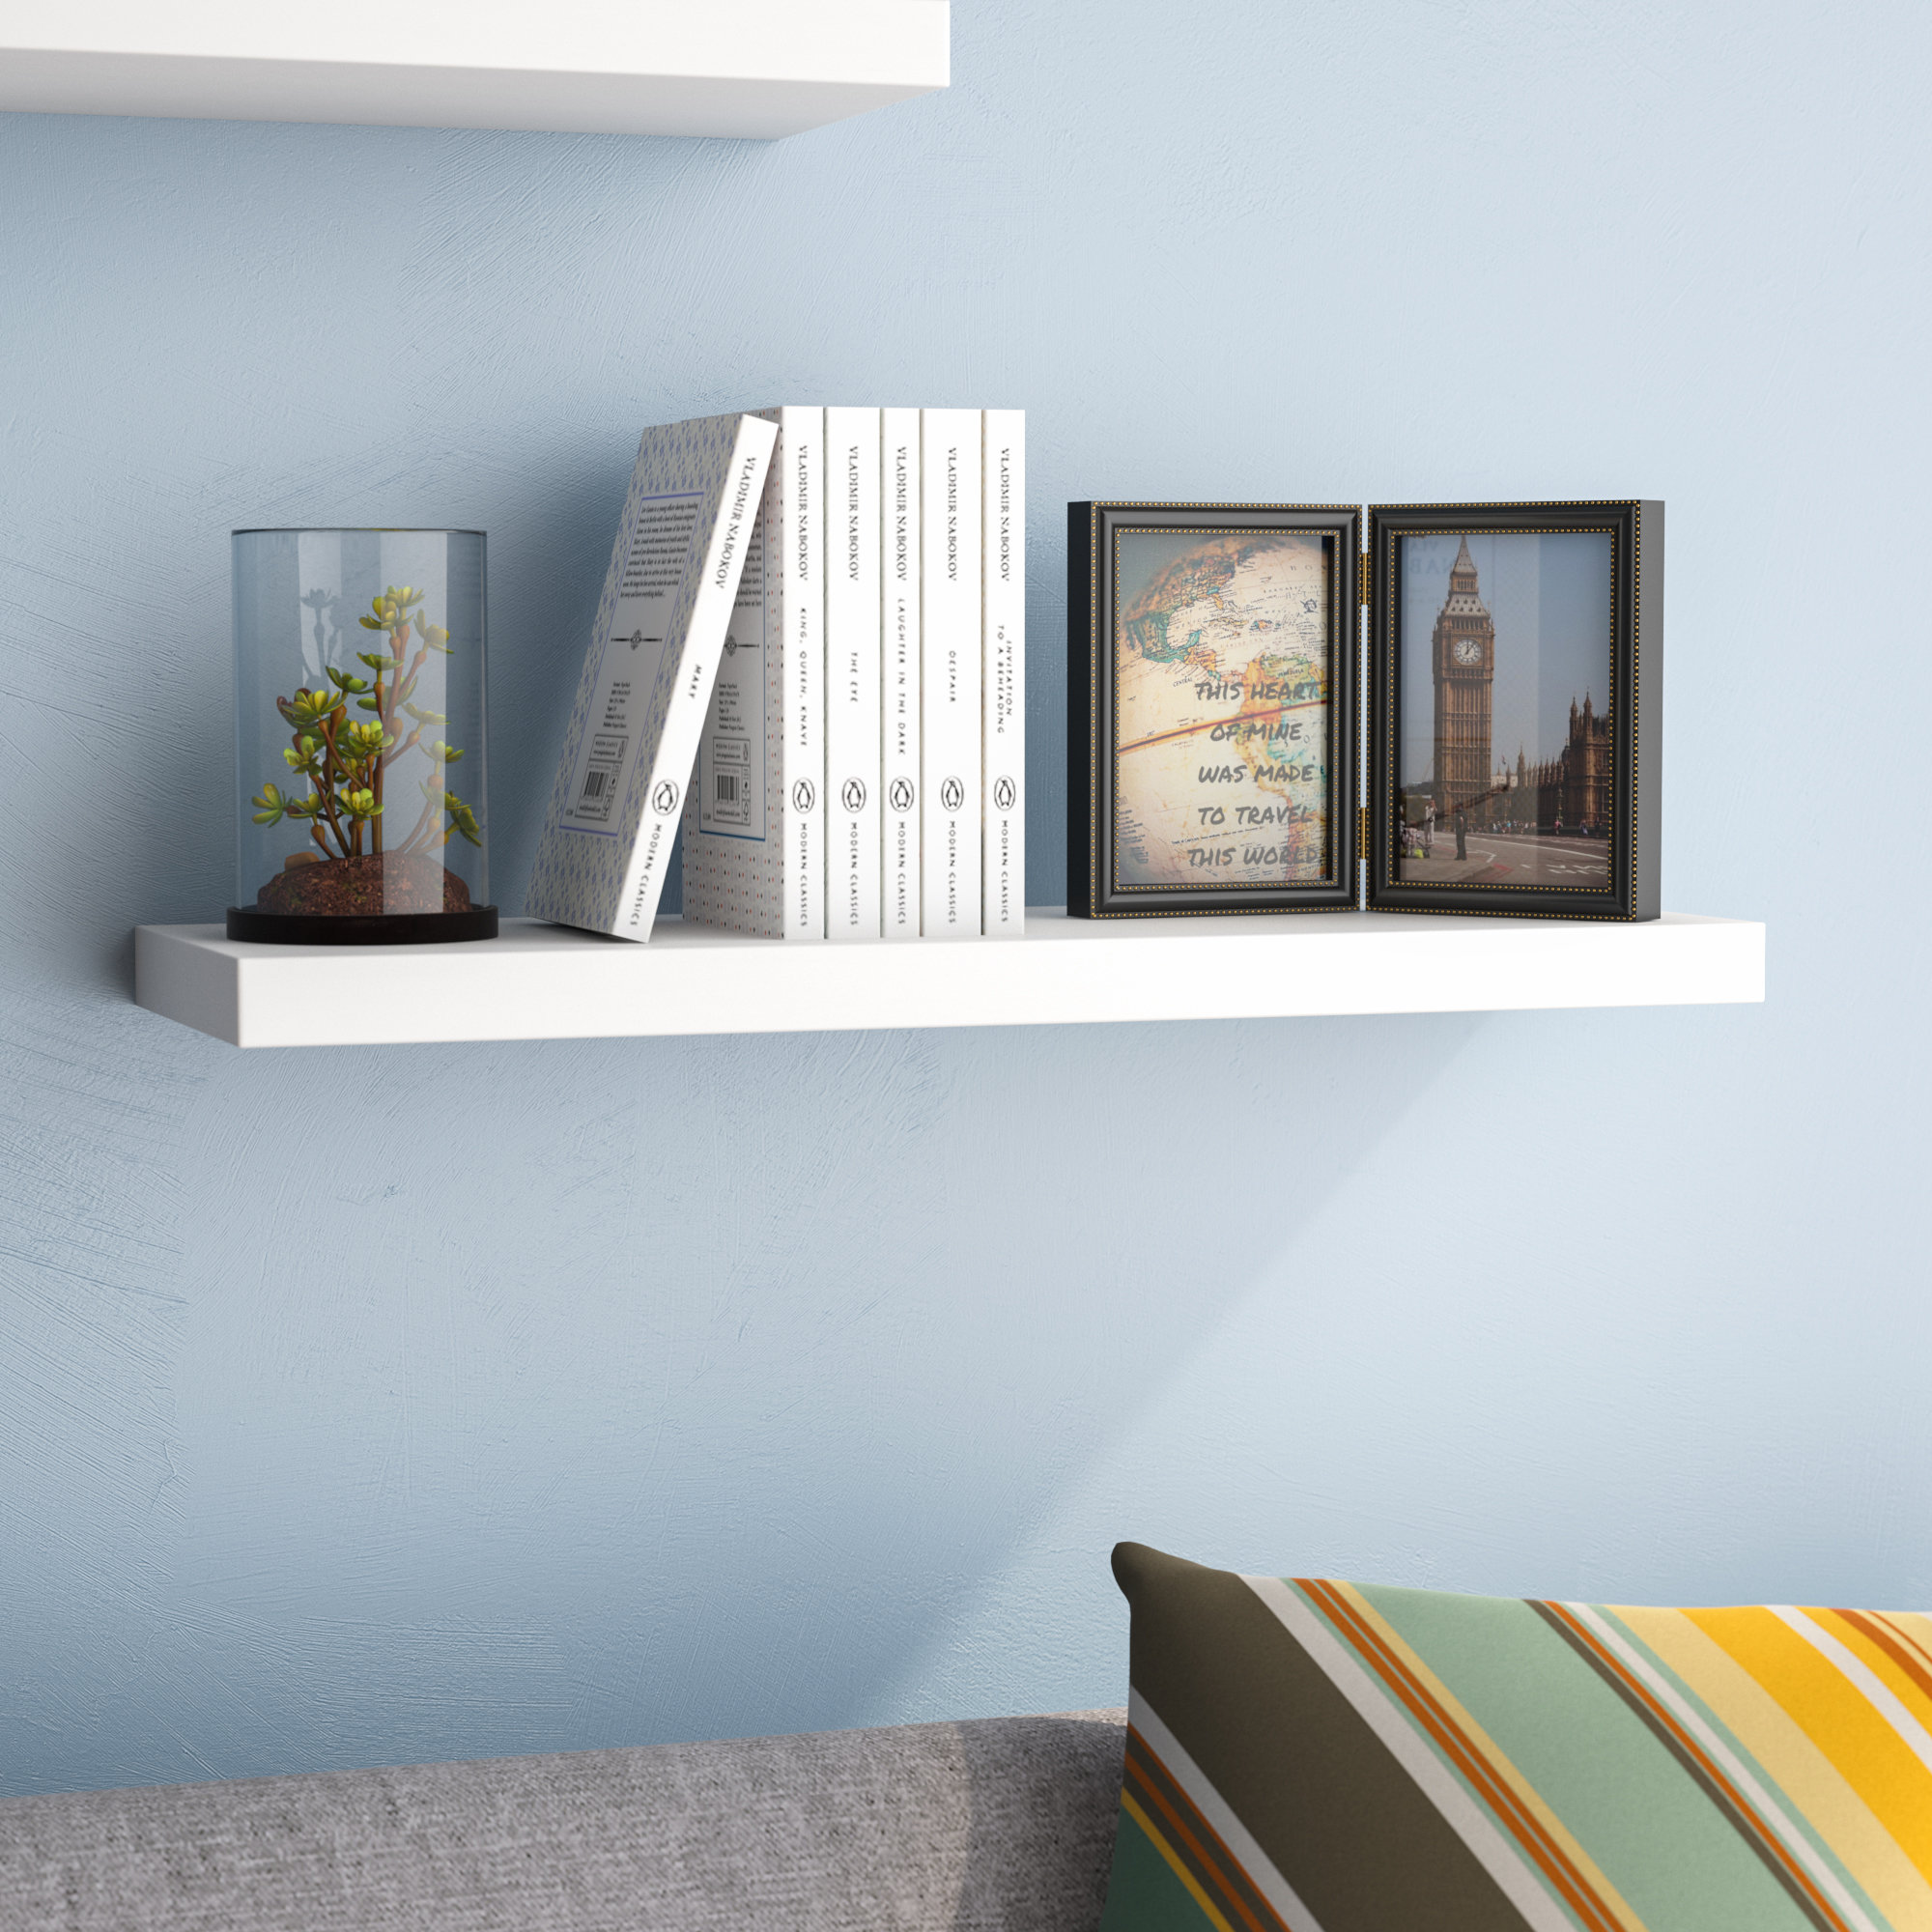 zipcode design kennesaw floating wall shelf reviews ledge bookshelf mounted study table laying vinyl tile uneven floor hanging shoe rack dvd how deep are top kitchen cabinets